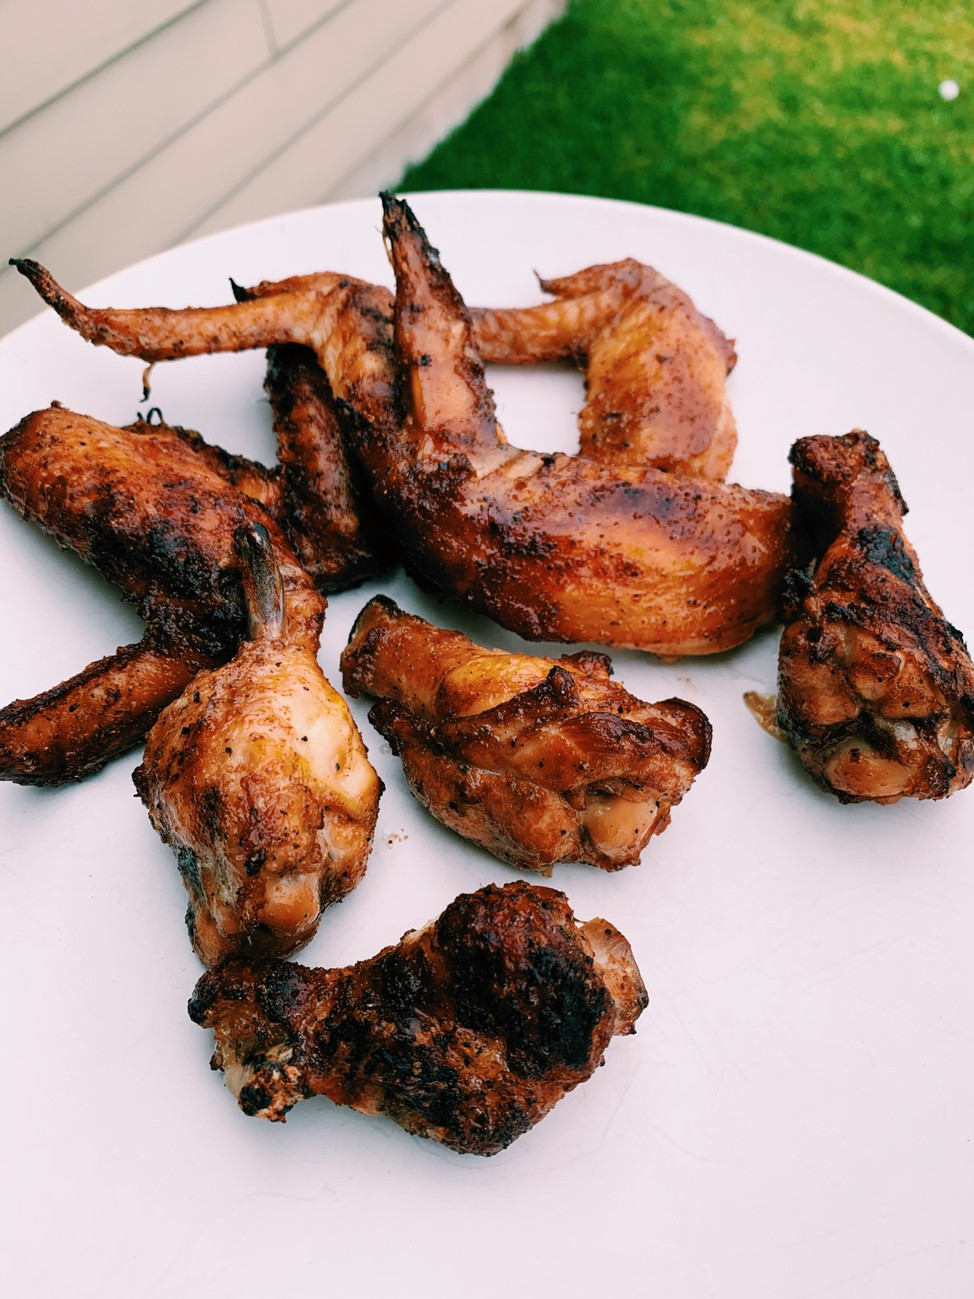 Baked + Grilled Chicken Wings